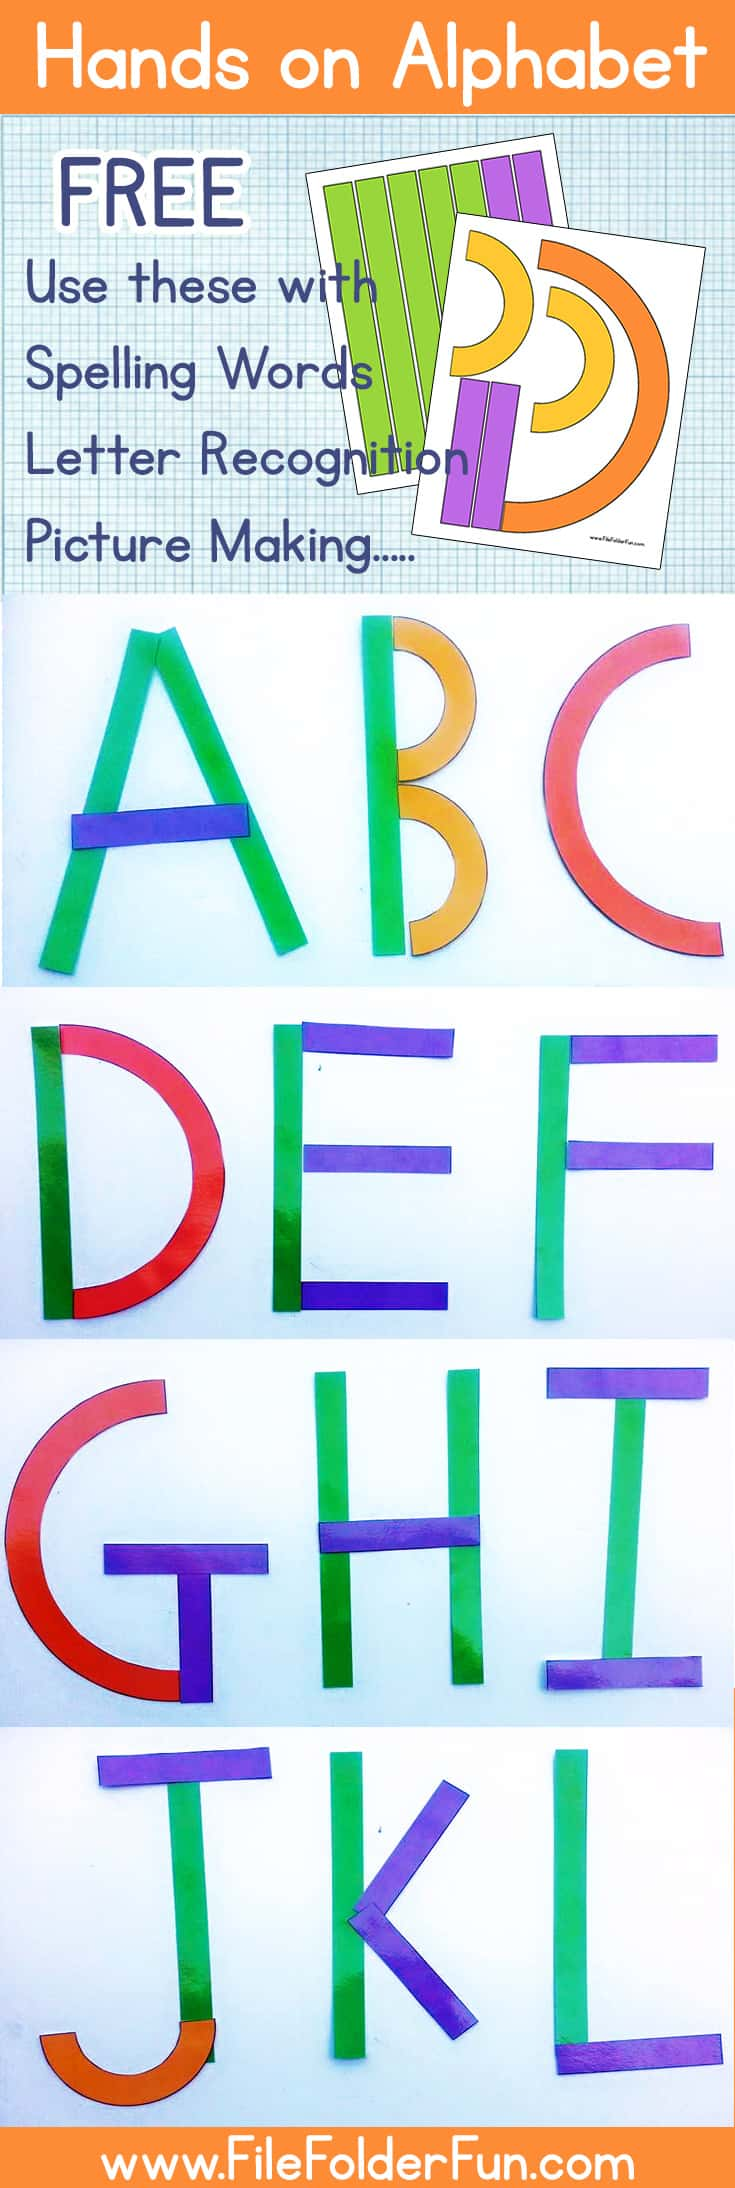 abc preschool games printable alphabet 437